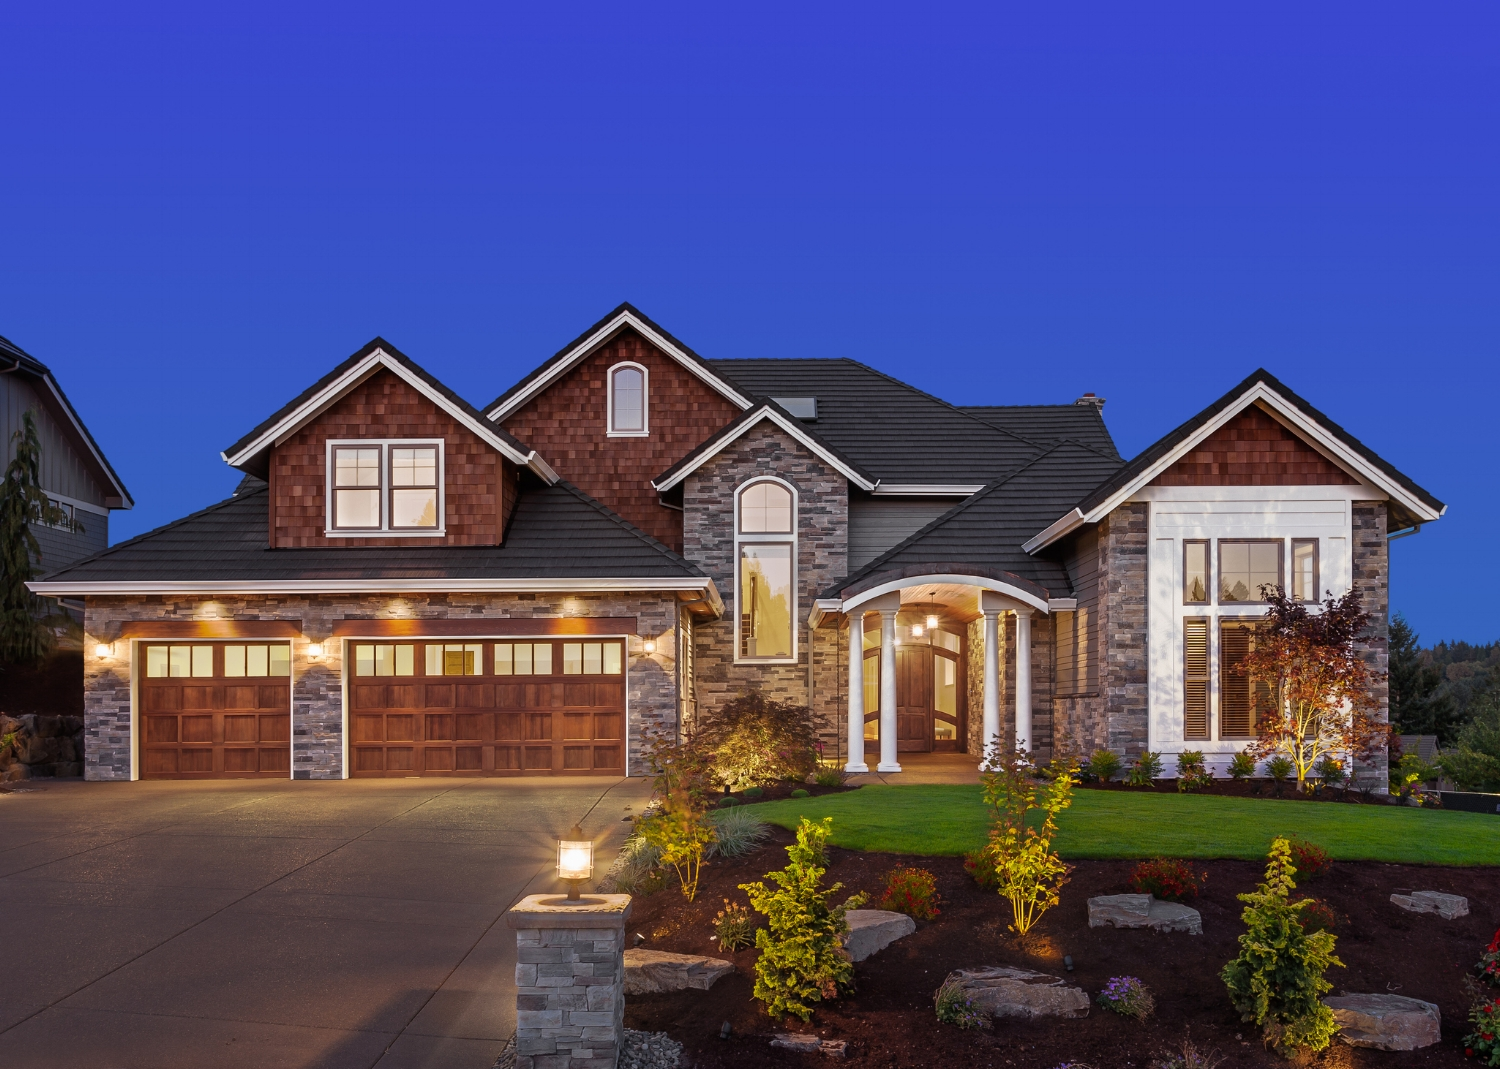 twilight photo of a beautiful home with a great landscaped yard.